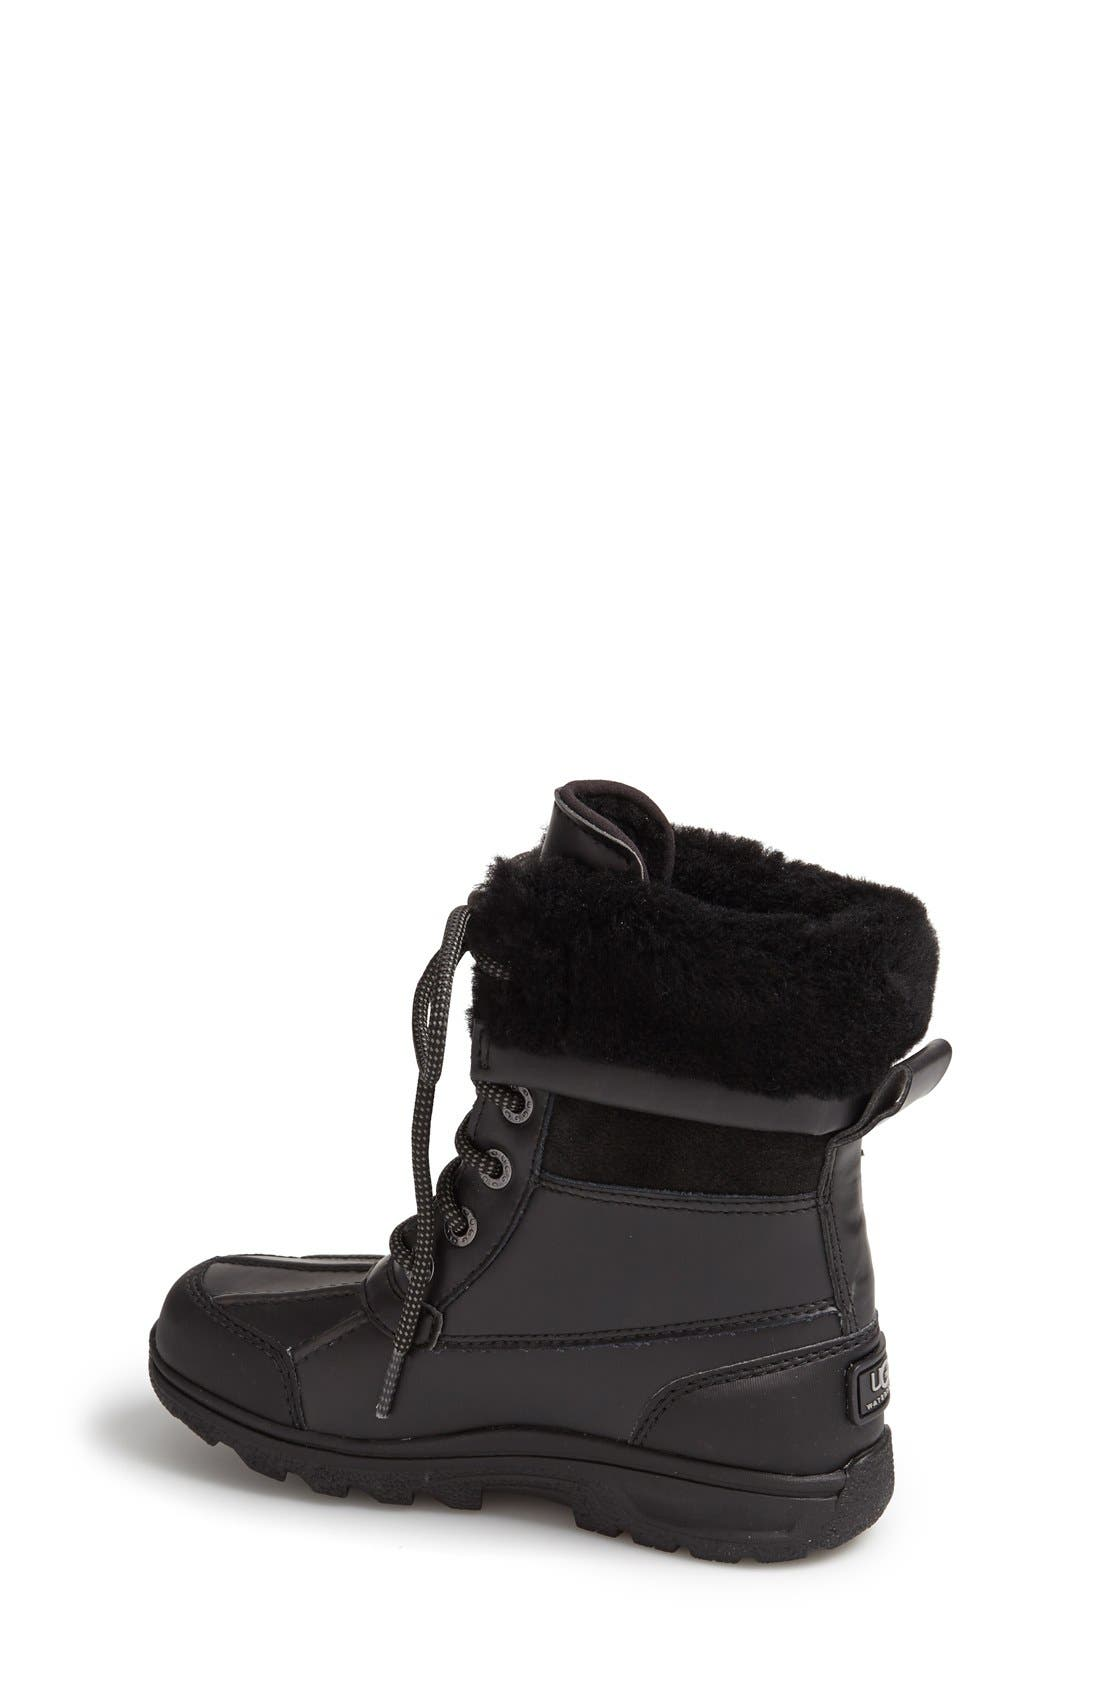 'Butte II' Waterproof Leather Boot,                             Alternate thumbnail 12, color,